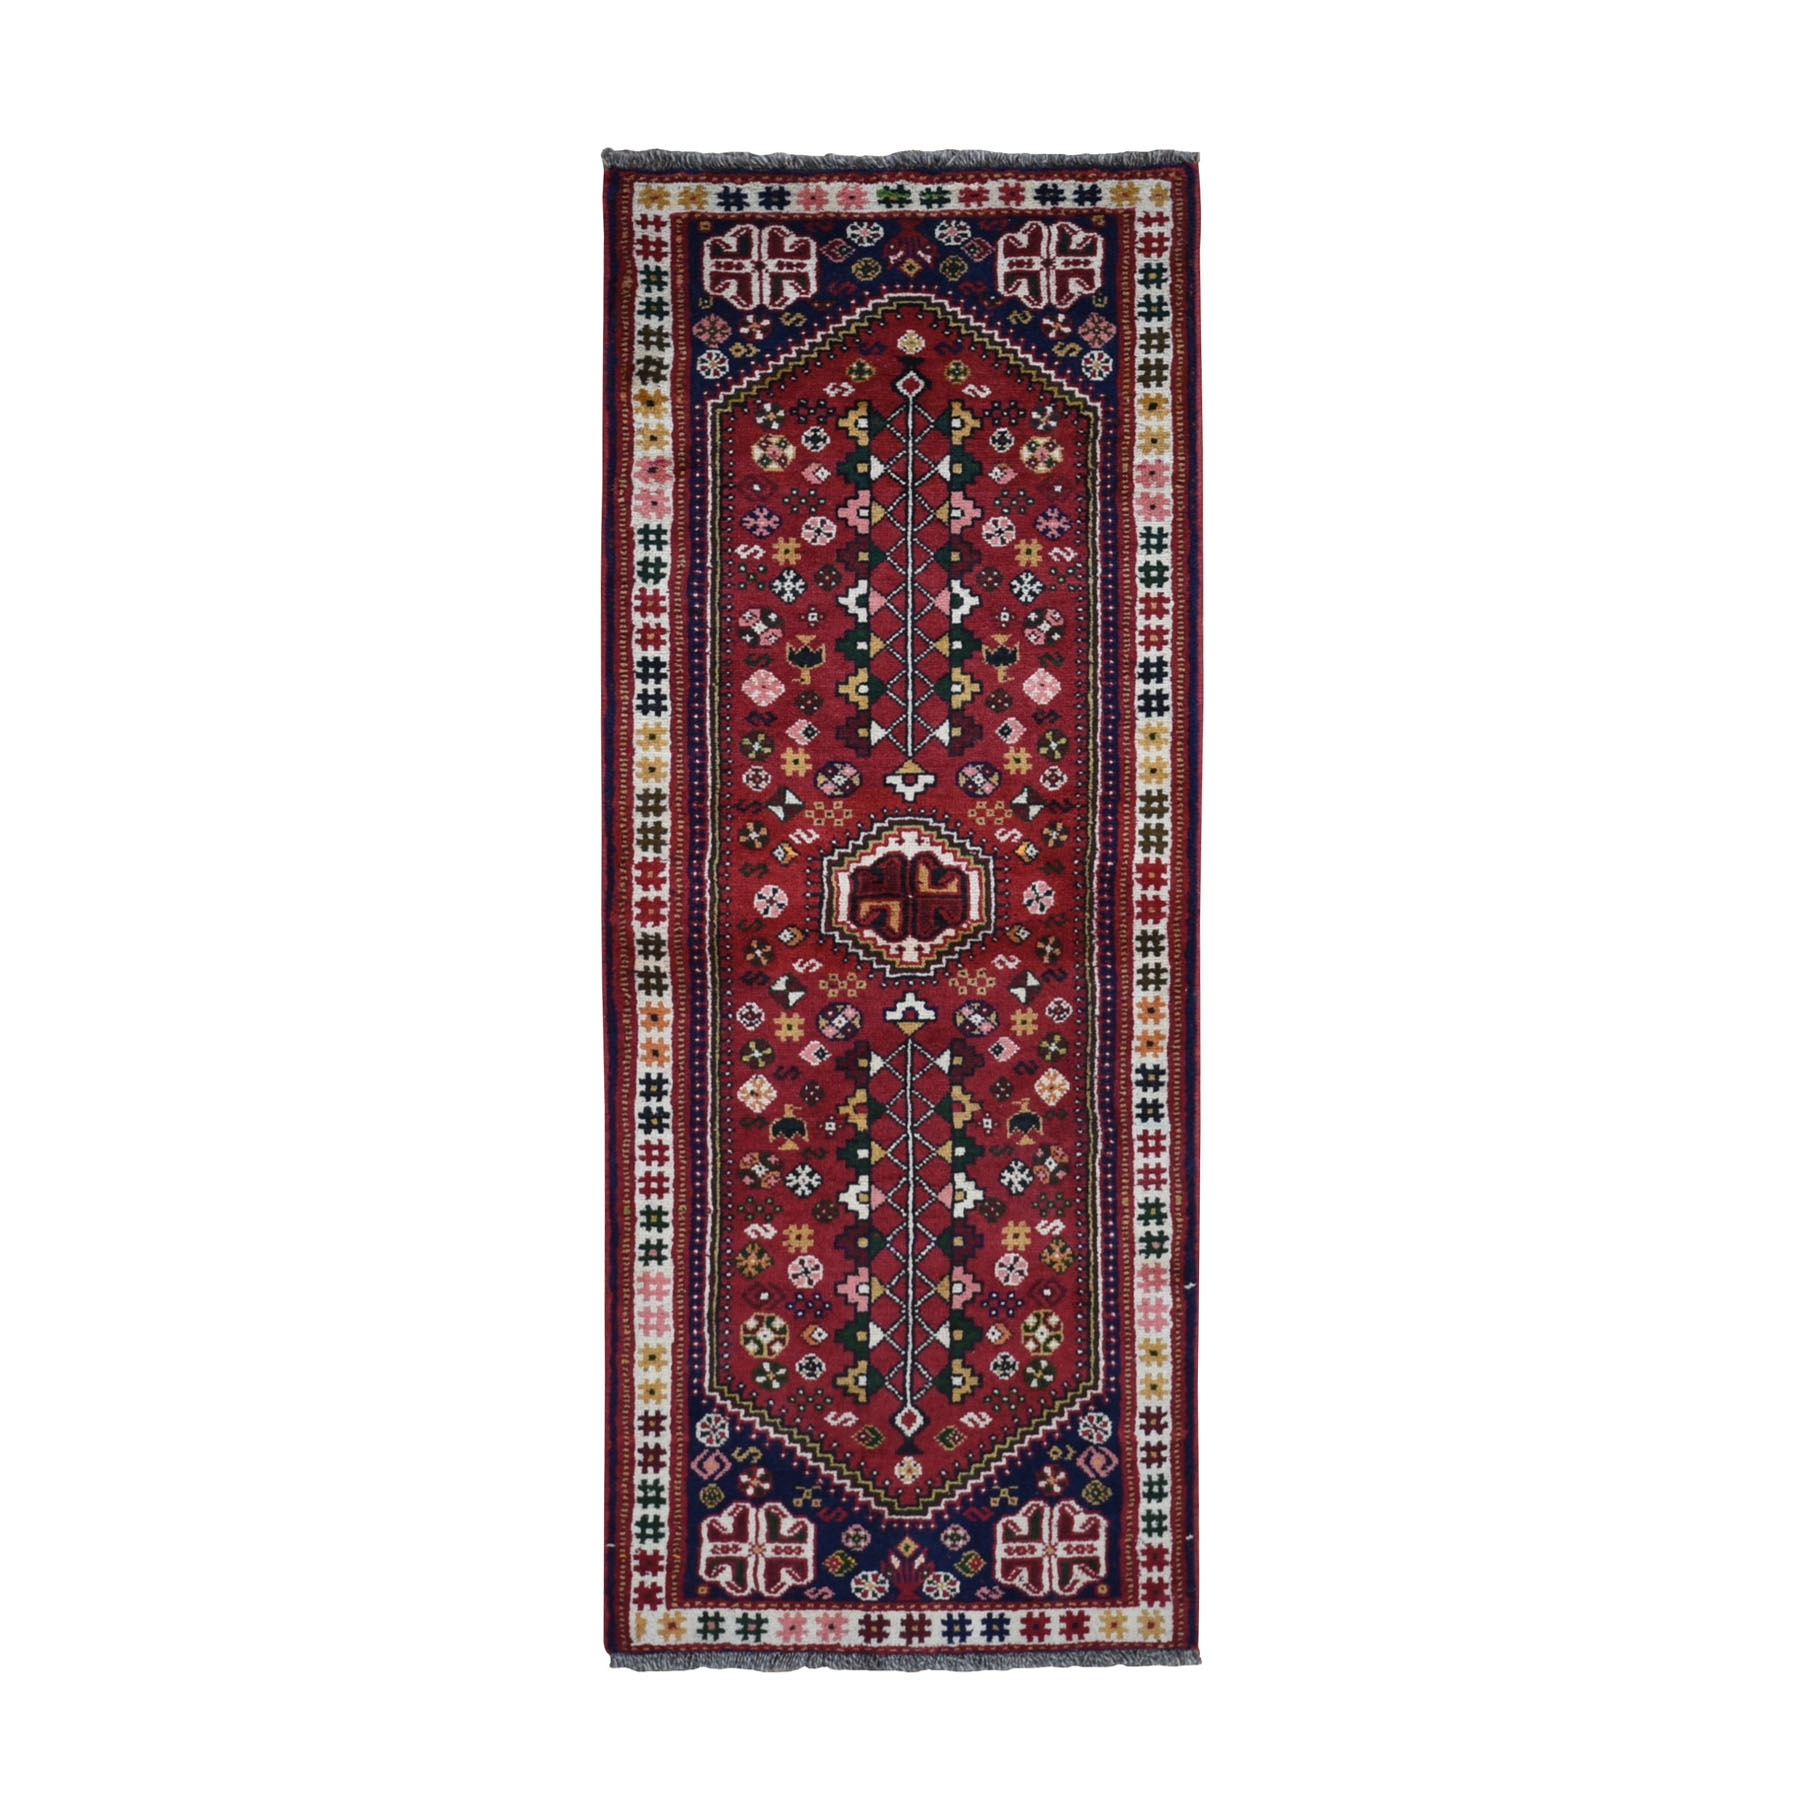 "2'5""x6'9"" Red New Persian Shiraz Pure Wool Runner Hand Knotted Oriental Rug"